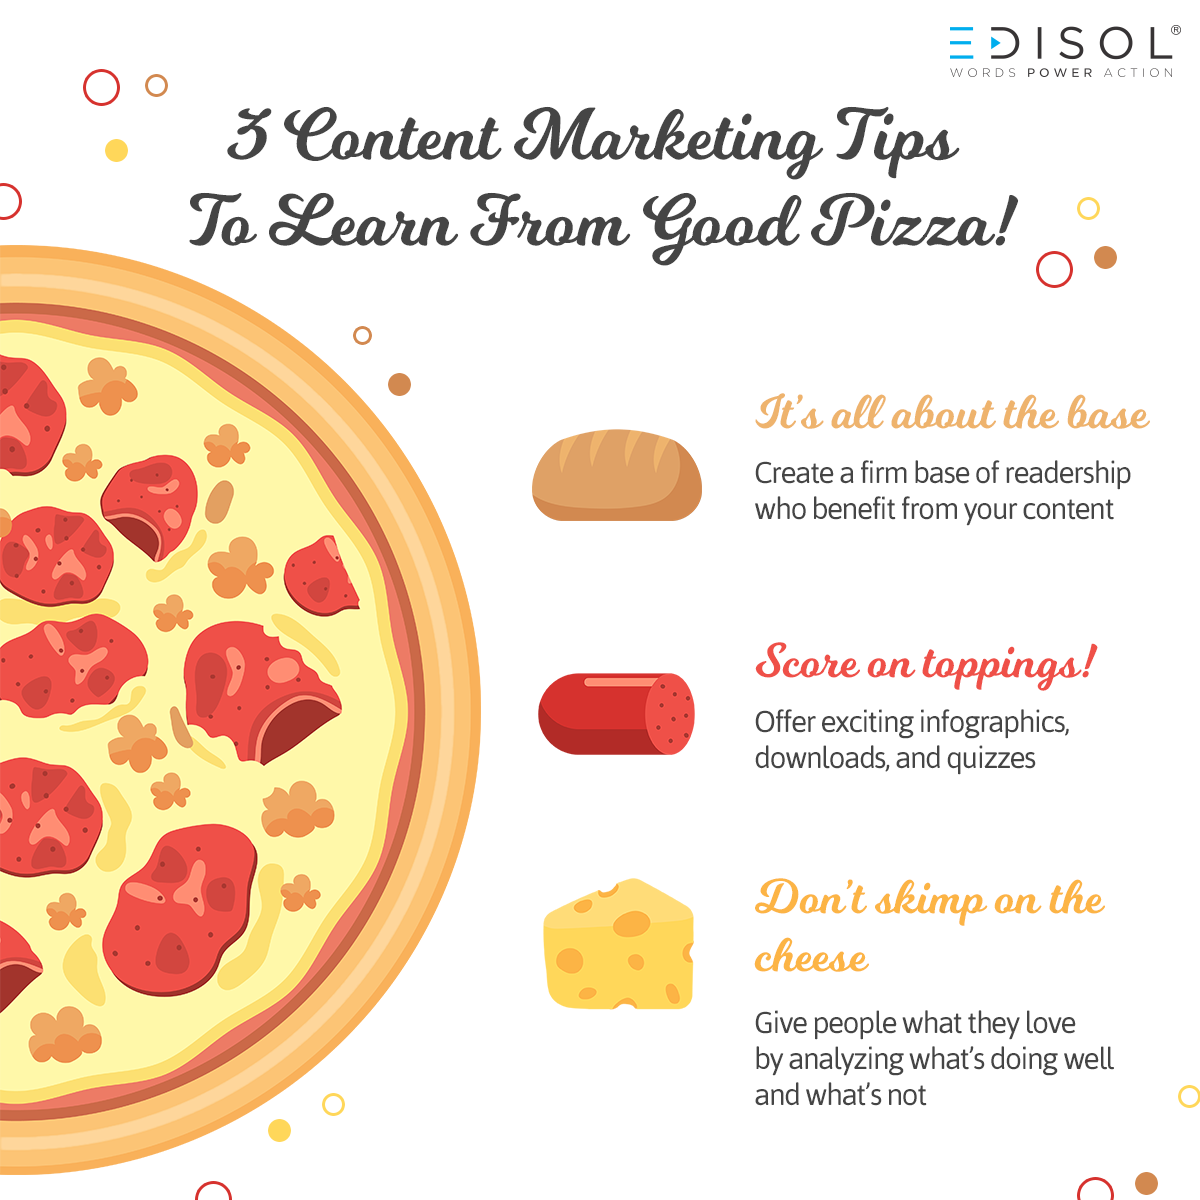 Edisol_Part1_IG_3 content marketing tips to learn from good pizza!_v4.png